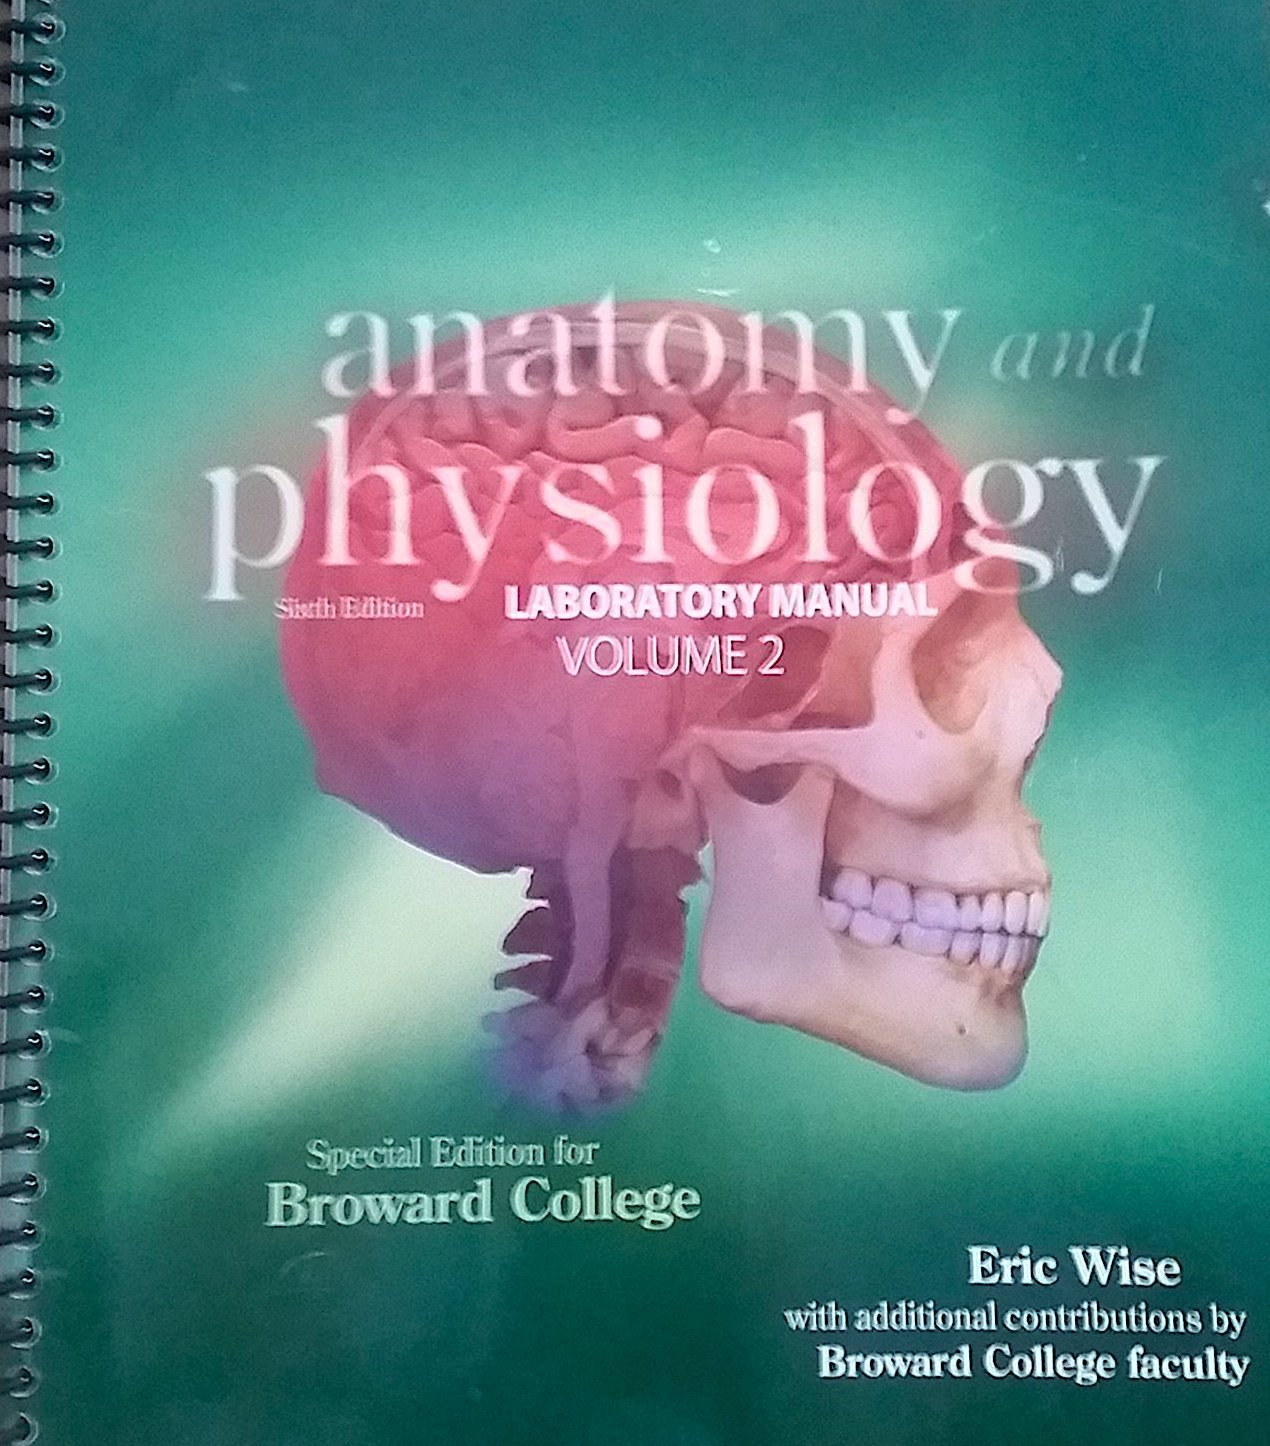 Anatomy and Physiology Laboratory Manual Volume 2 6th Edition Volume ...